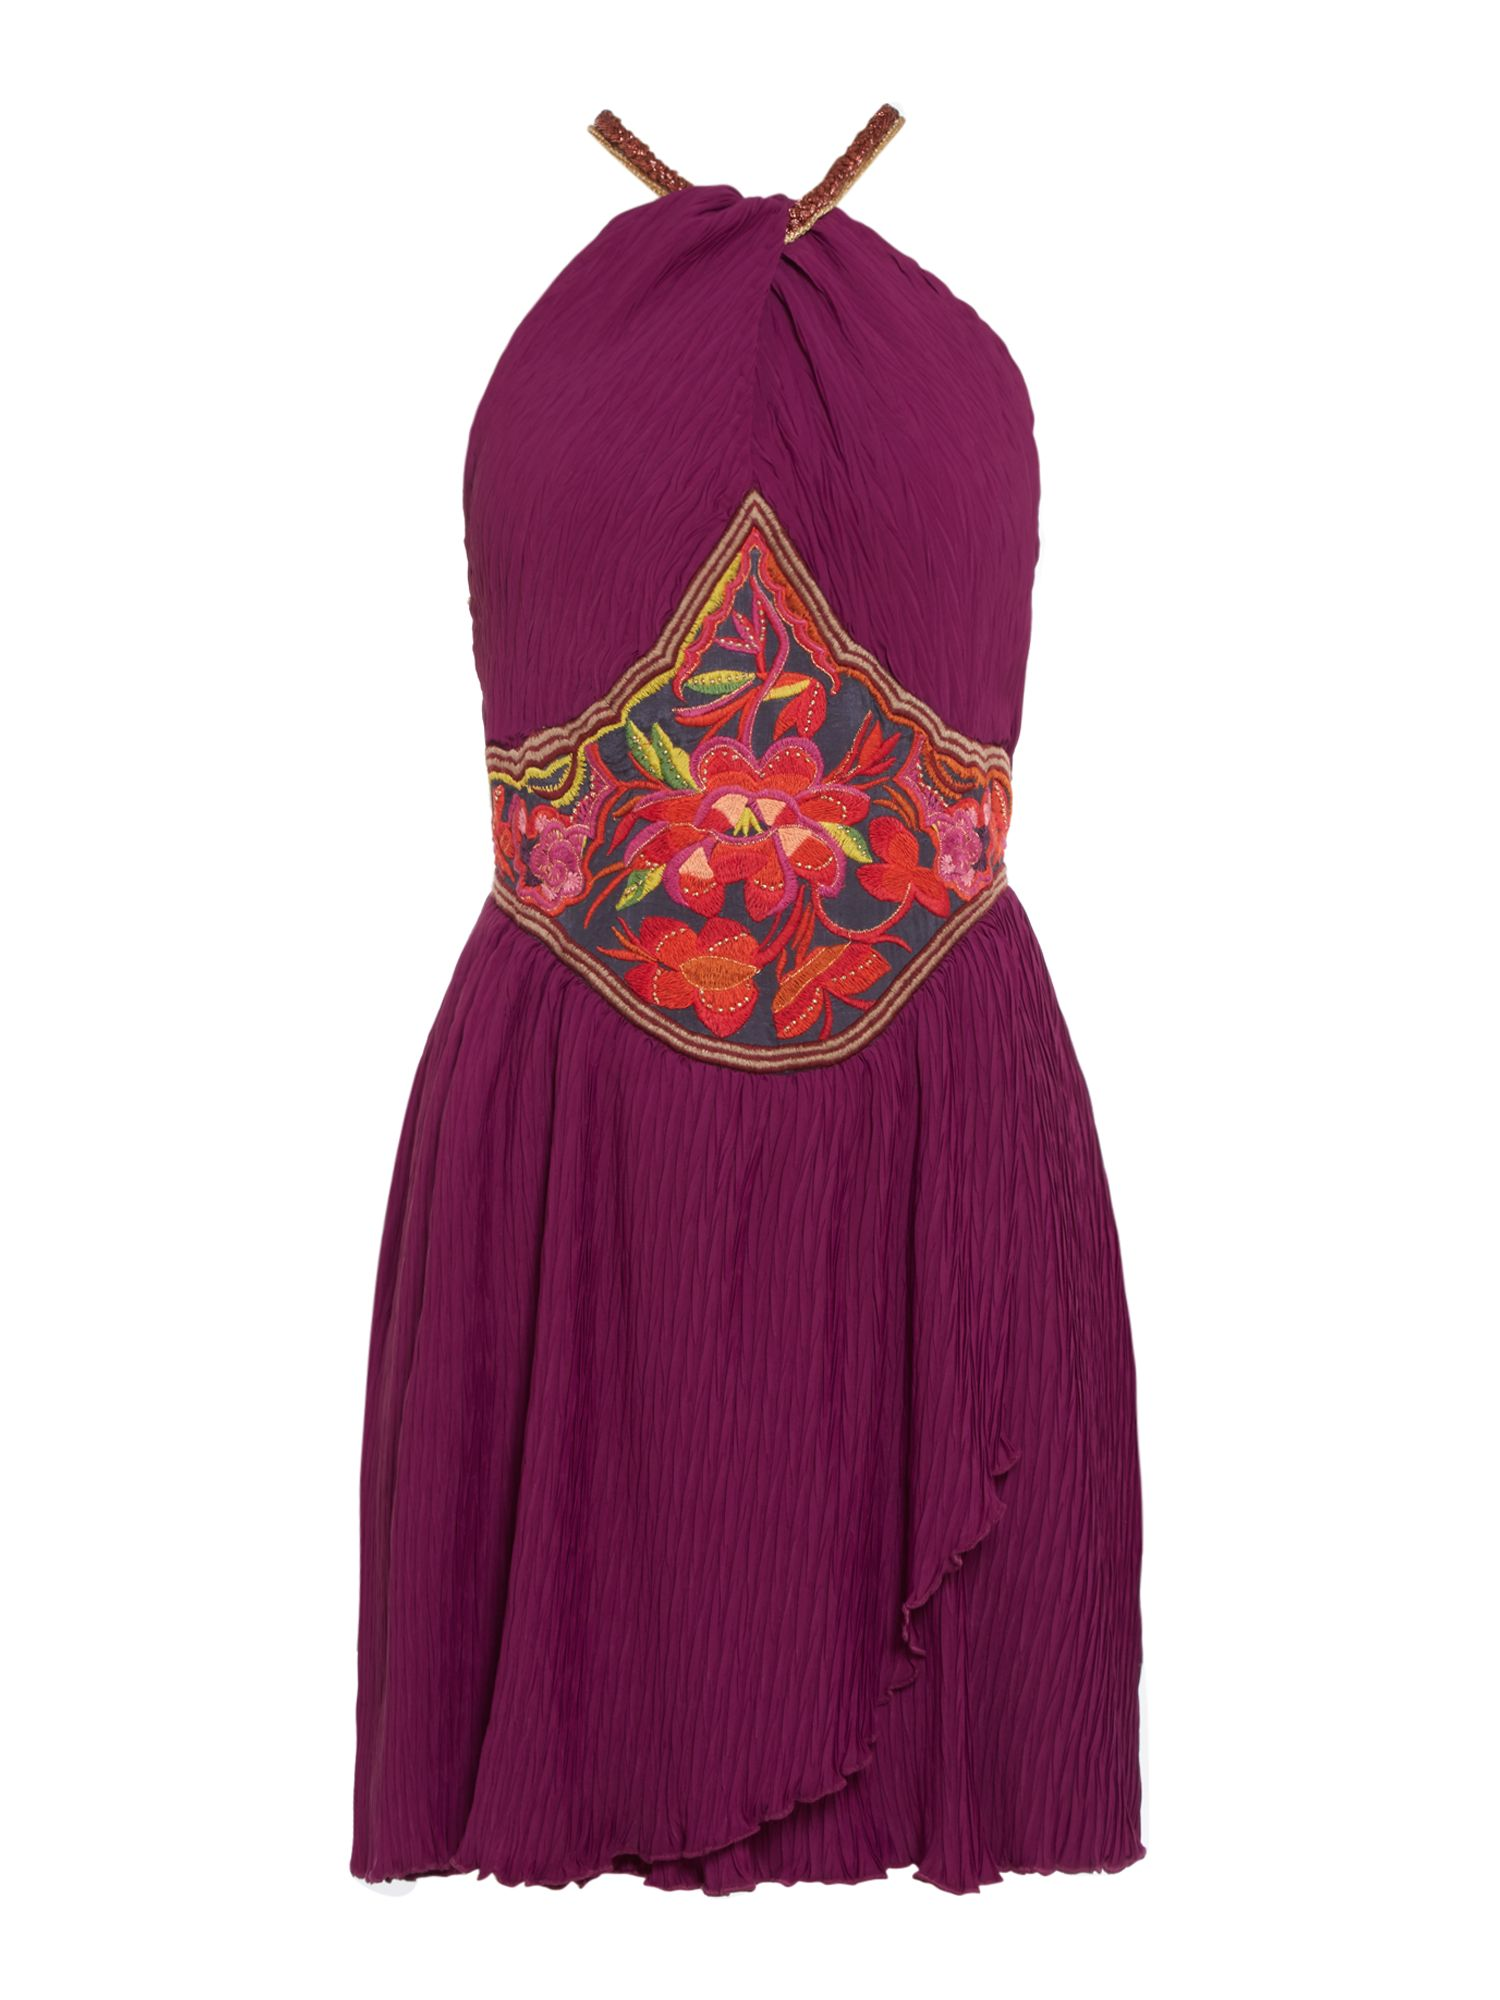 Free People Marcella Embroidered Mini Dress With Halter Neck, Purple